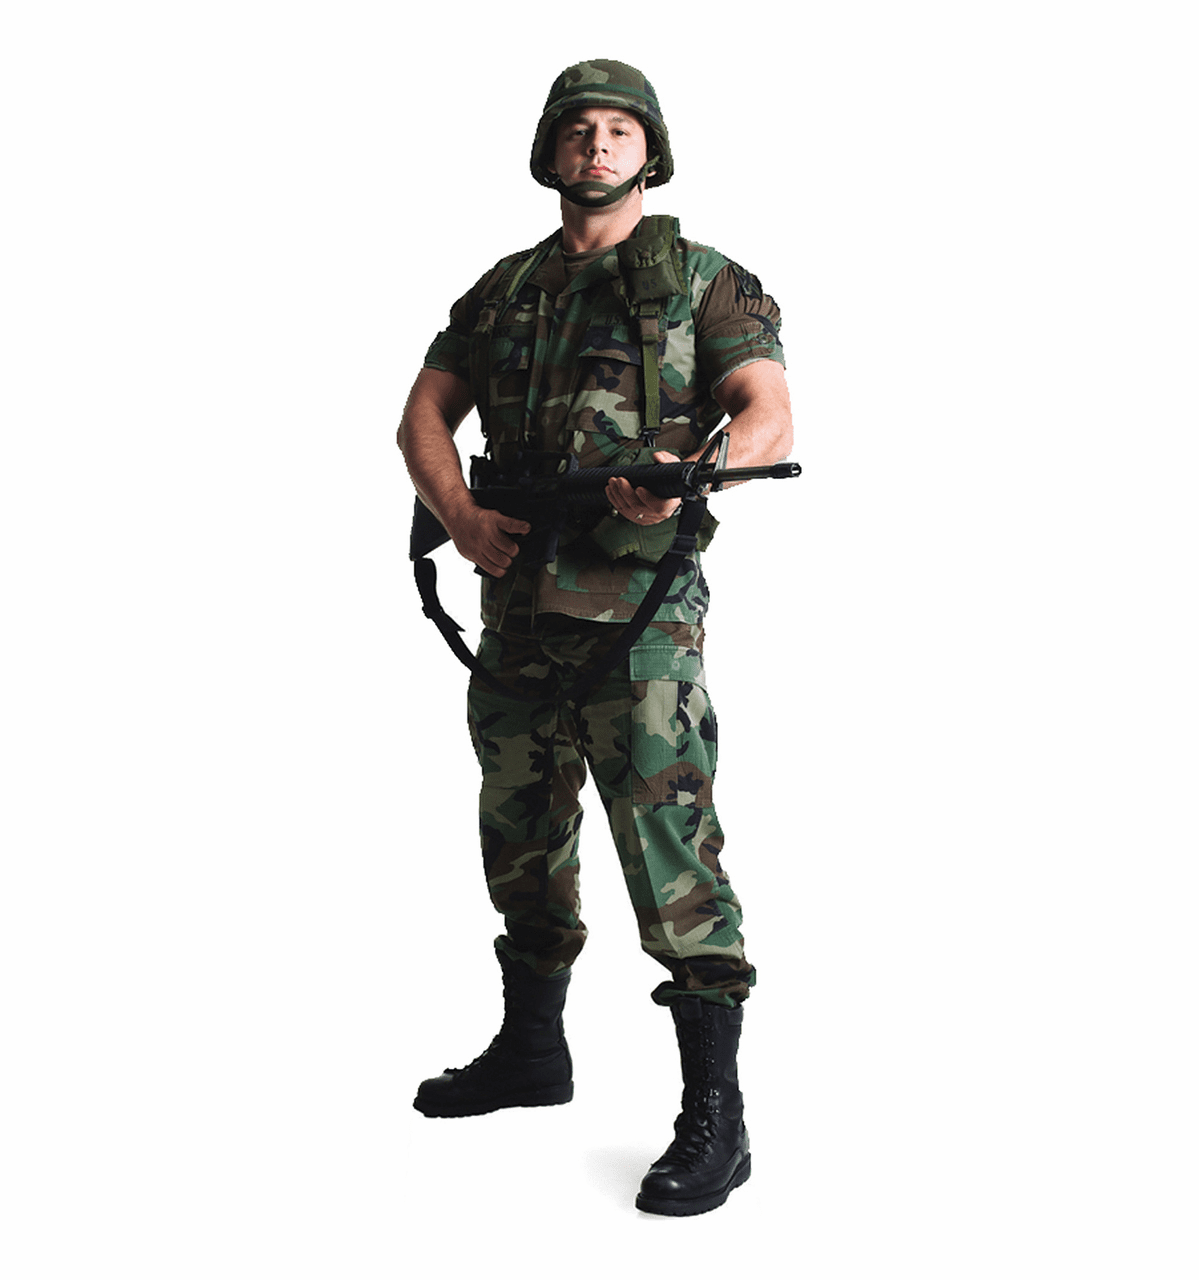 Life Size Army Soldier Standee